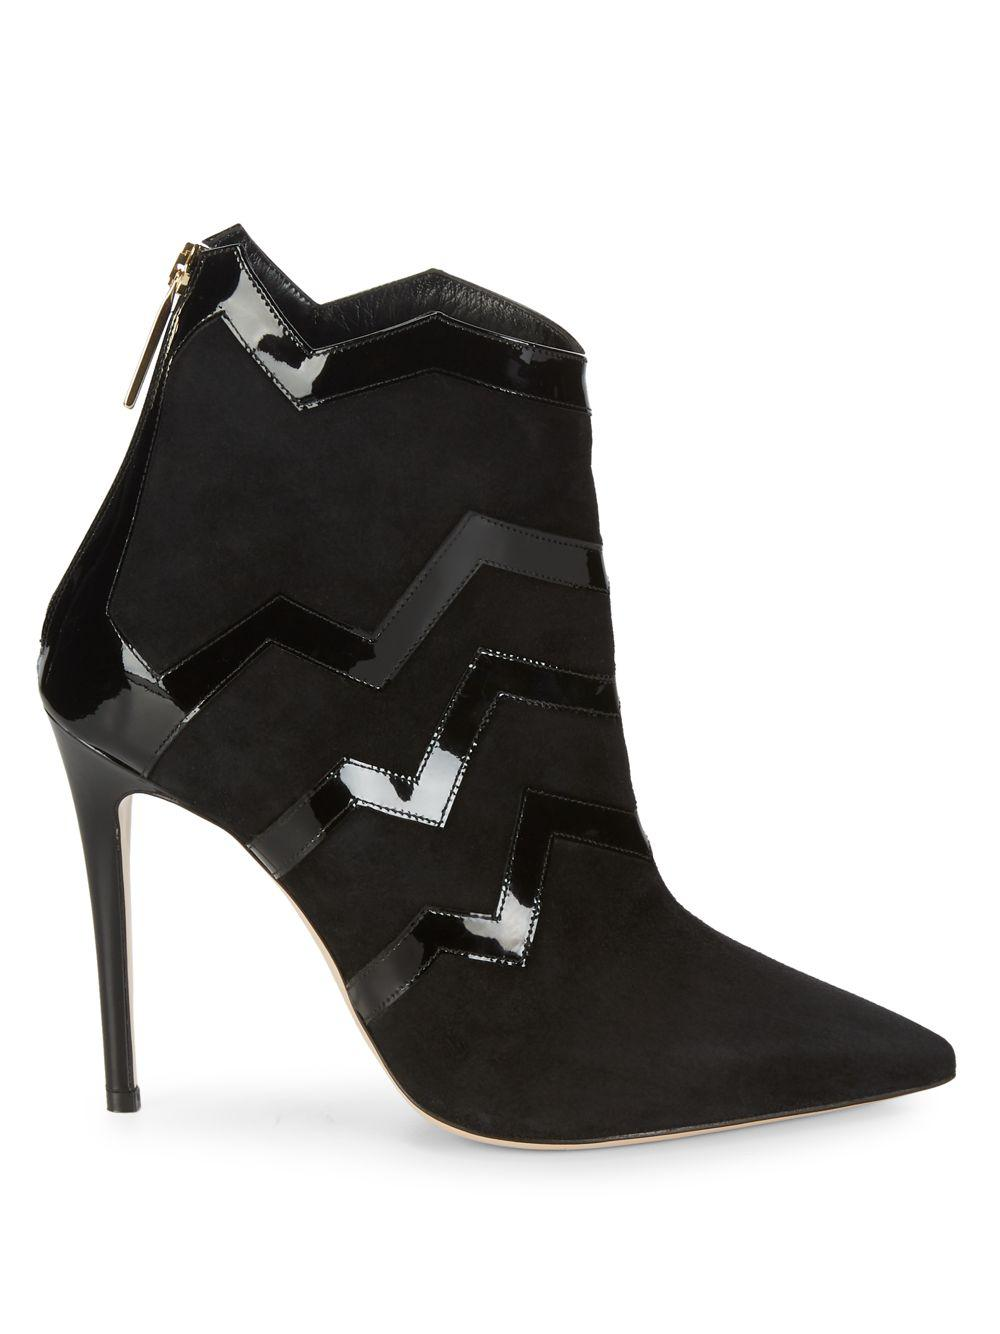 Aperlai Leather Patent Zigzag Suede Boots in Black